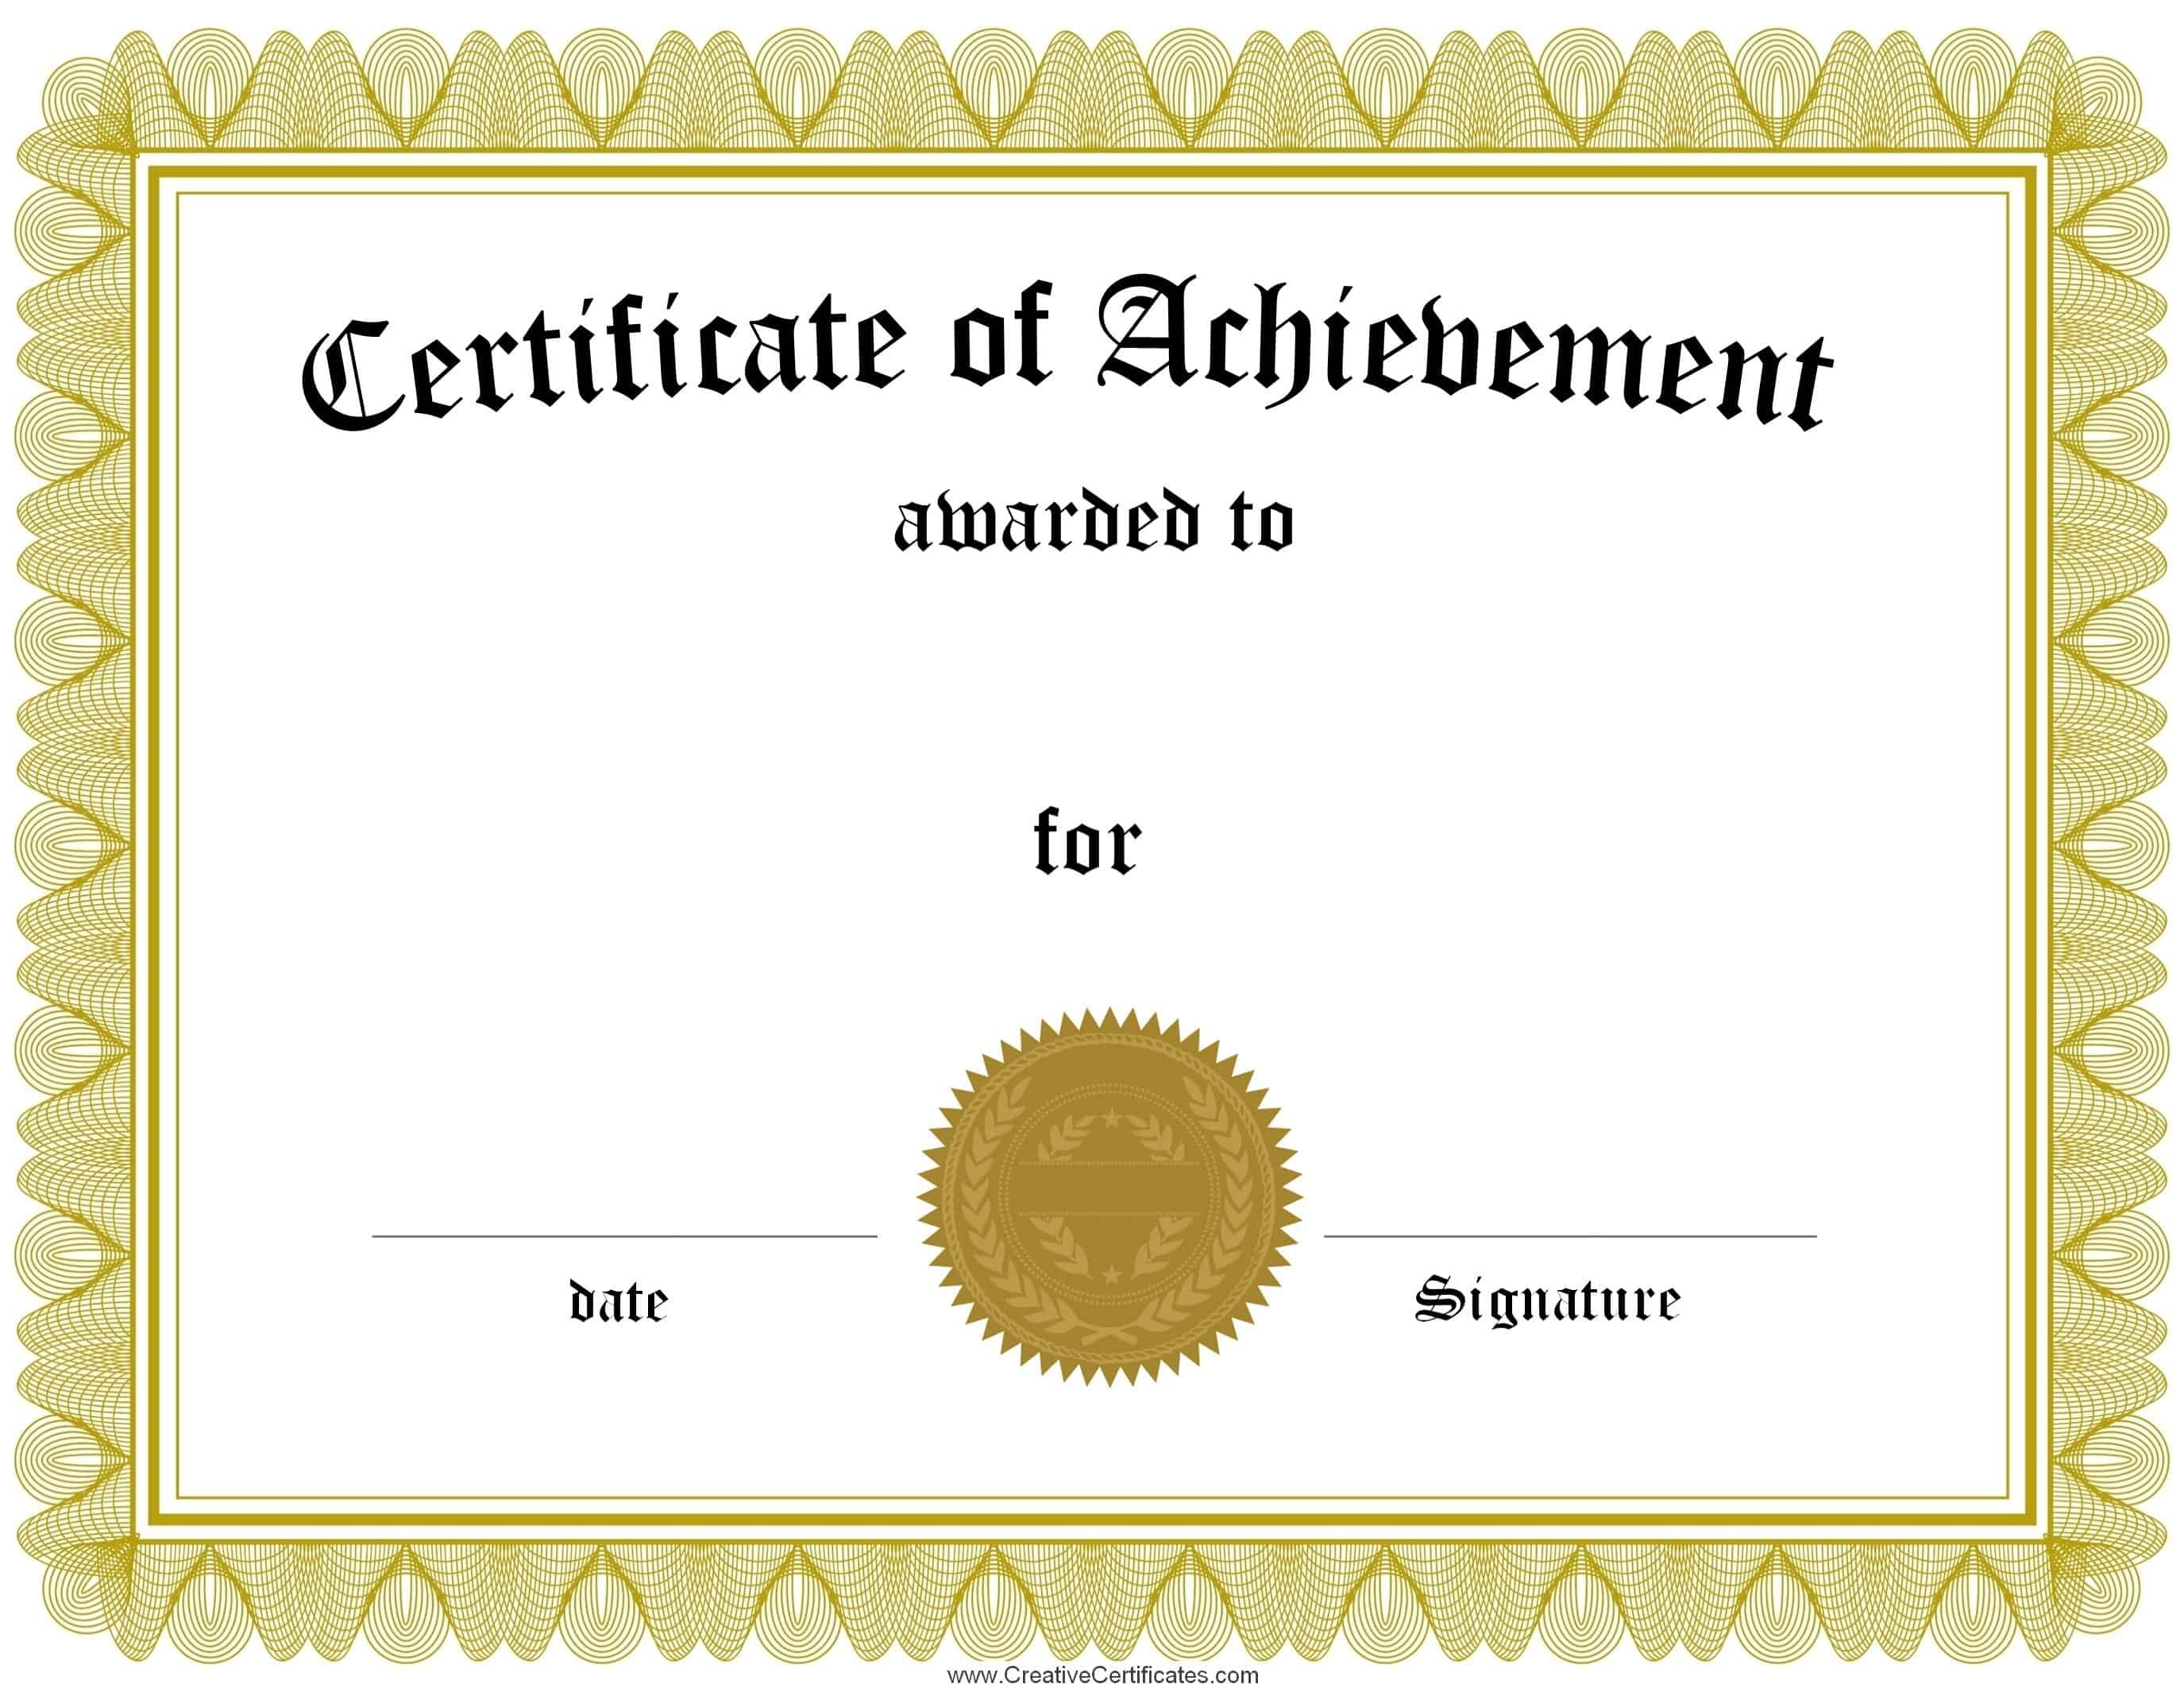 Free Customizable Certificate Of Achievement Intended For Free Printable Certificate Of Achievement Template